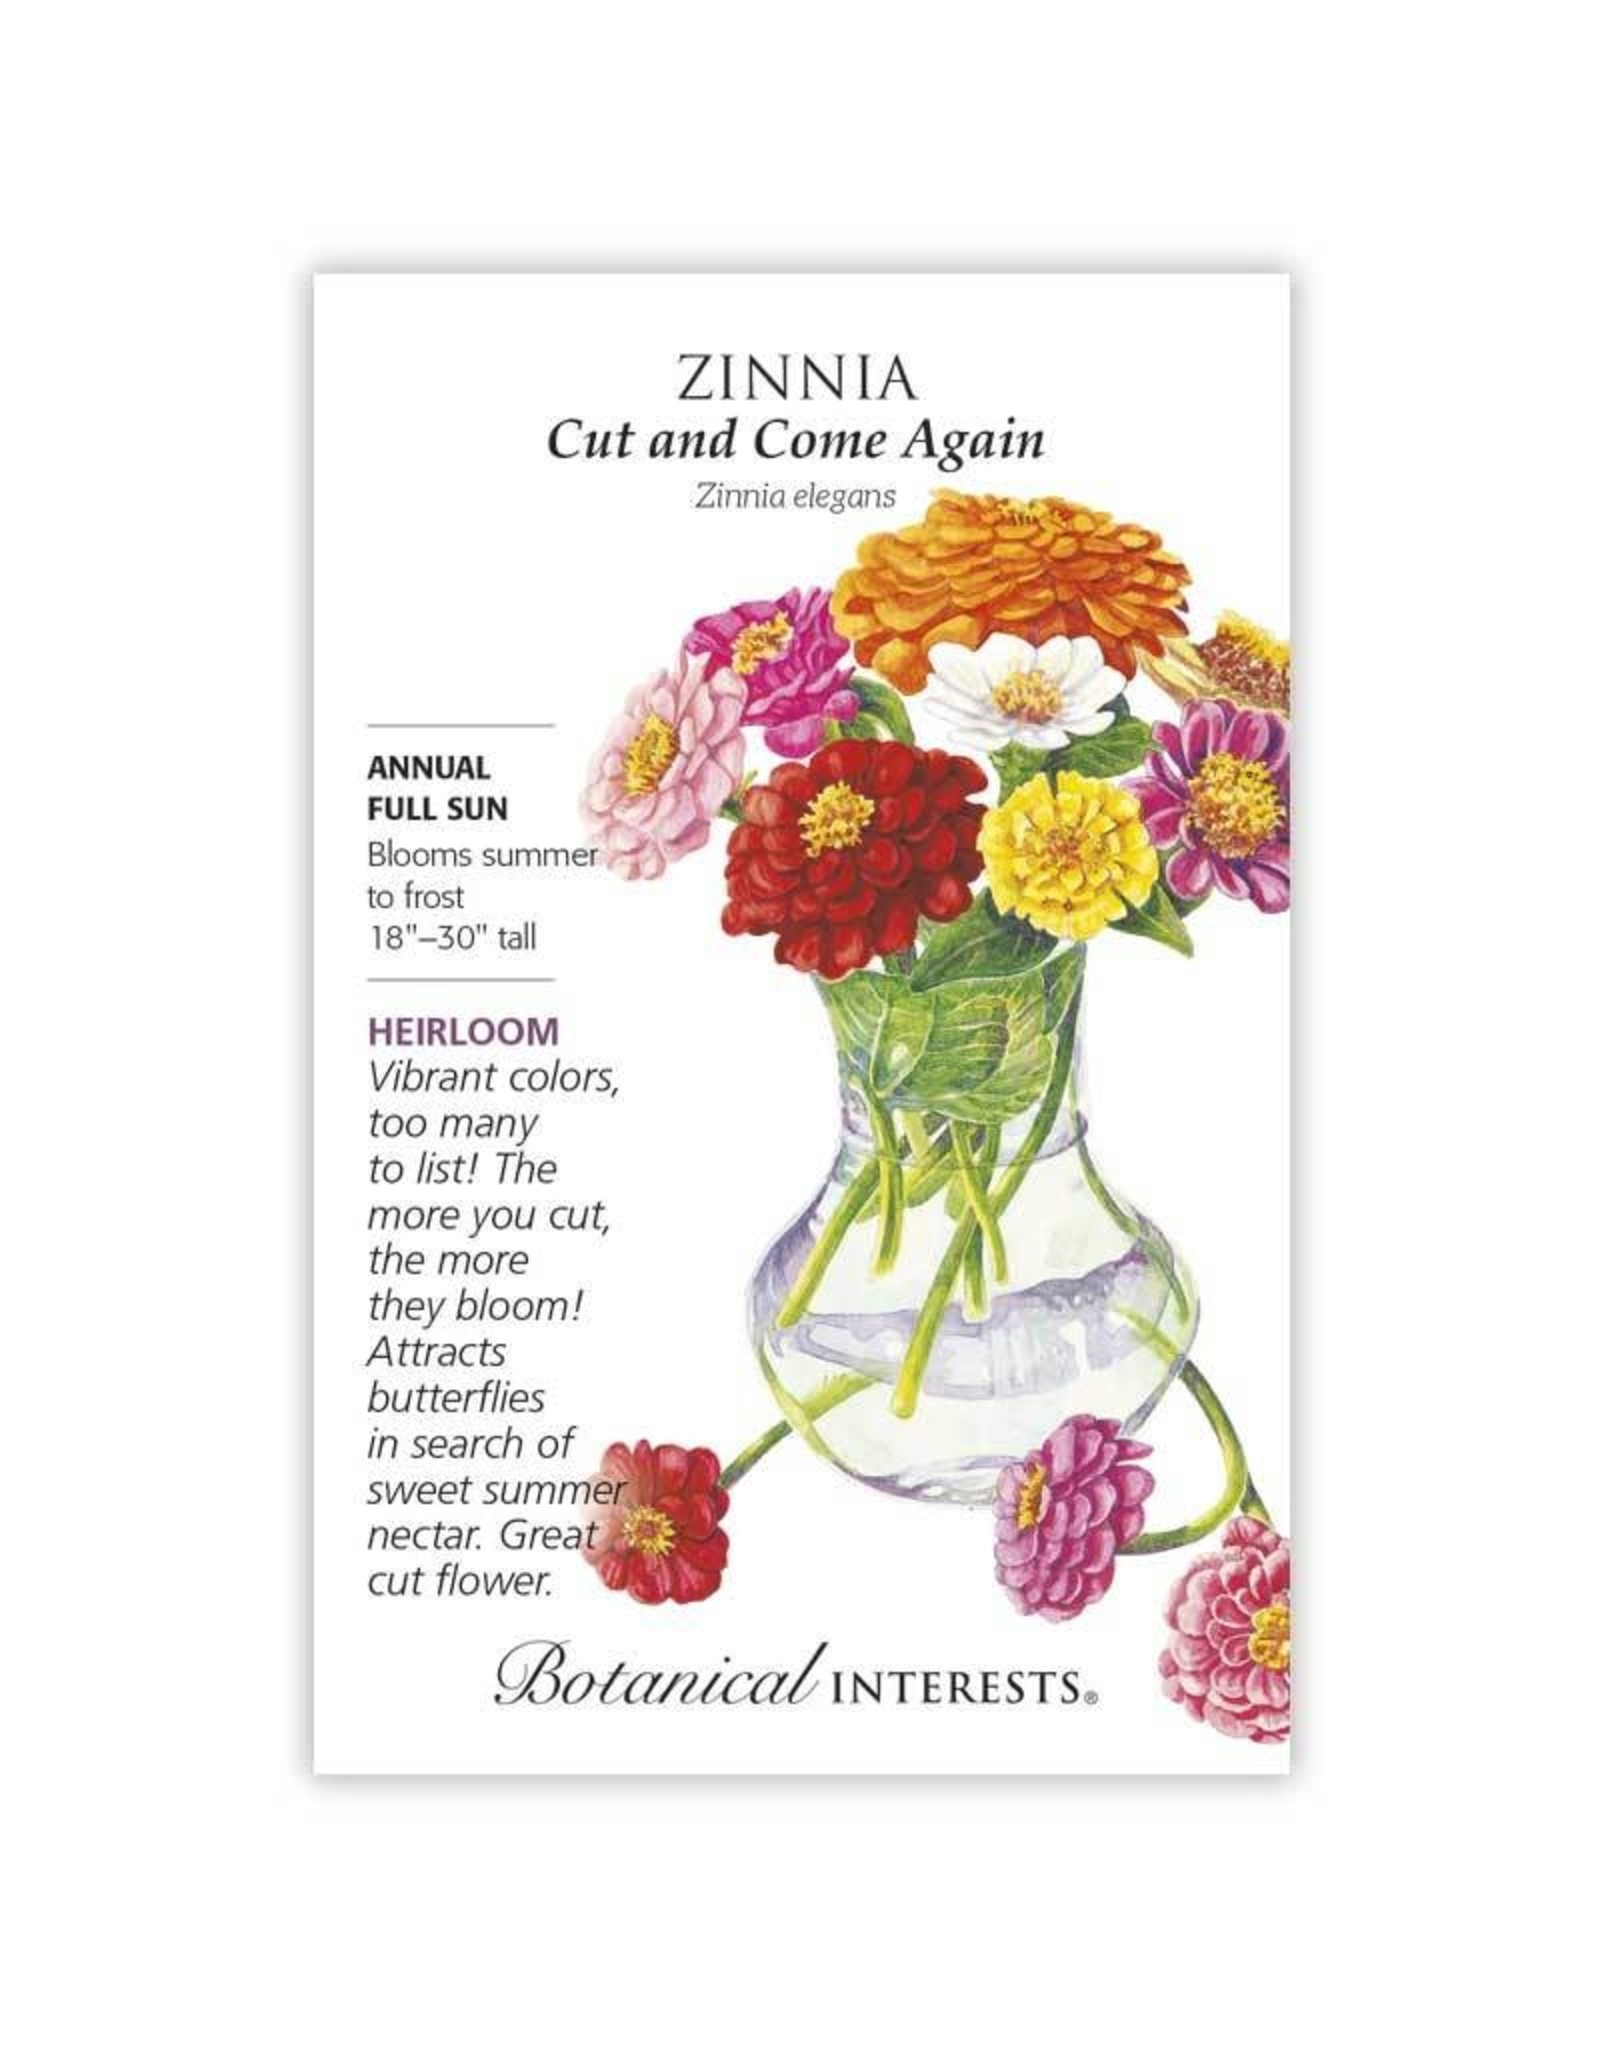 Seeds - Zinnia Cut and Come Again